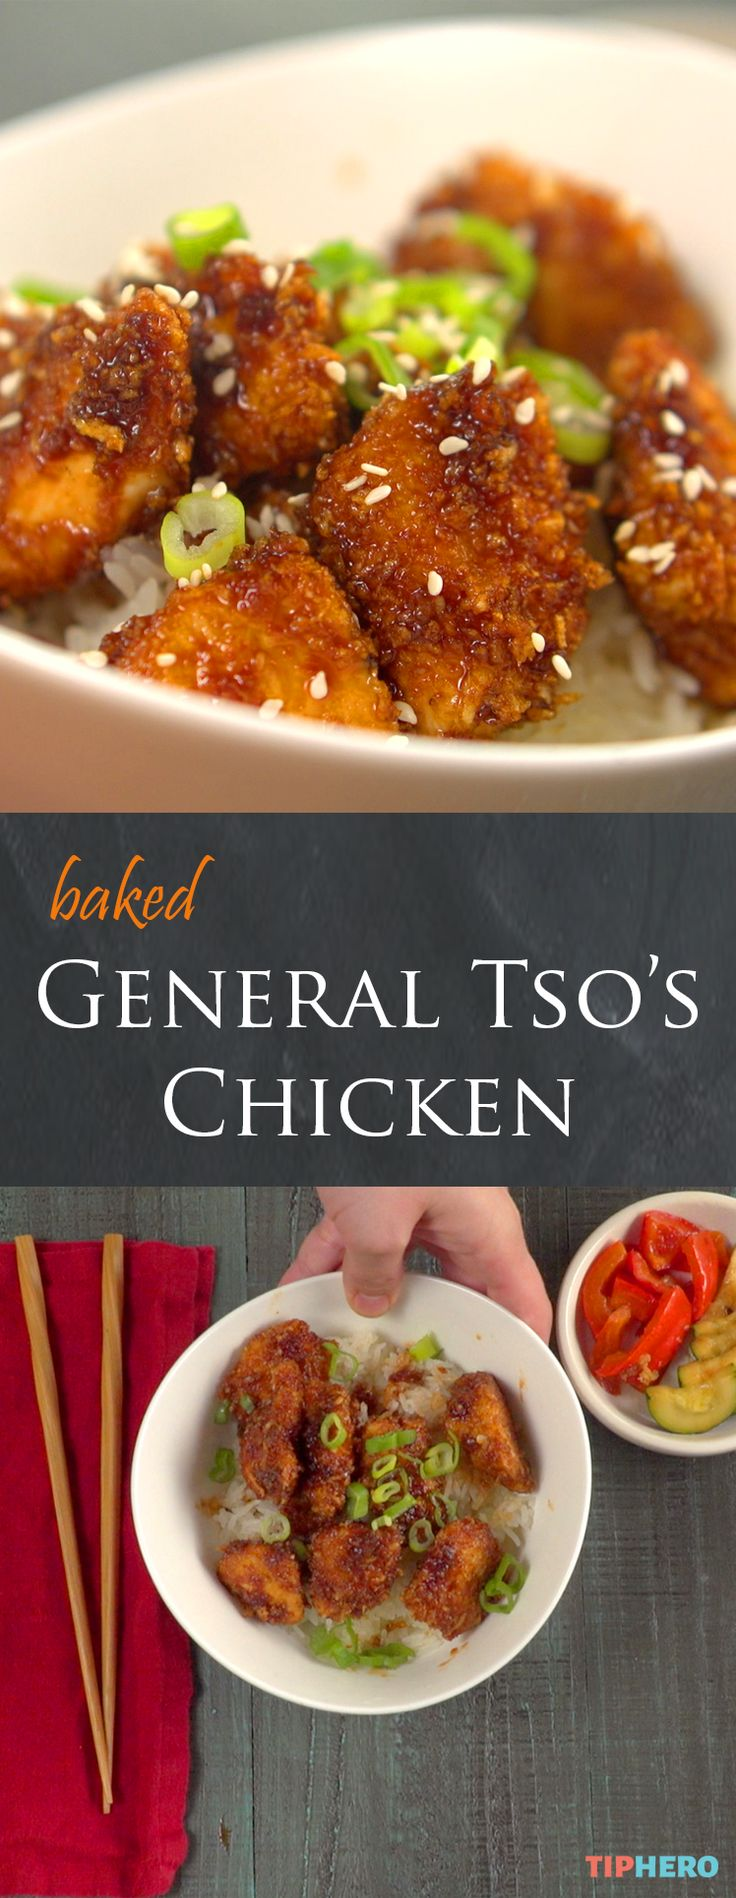 Baked General Tso's Chicken | Enjoy all the yummy sweet-and-spicy flavor of this restaurant-style favorite right at home. Bonus - the chicken is baked -- not deep-fried! -- for a slightly healthier dish. Click for the video and recipe.   #dinnertime #familydinner #takeout #homecooking